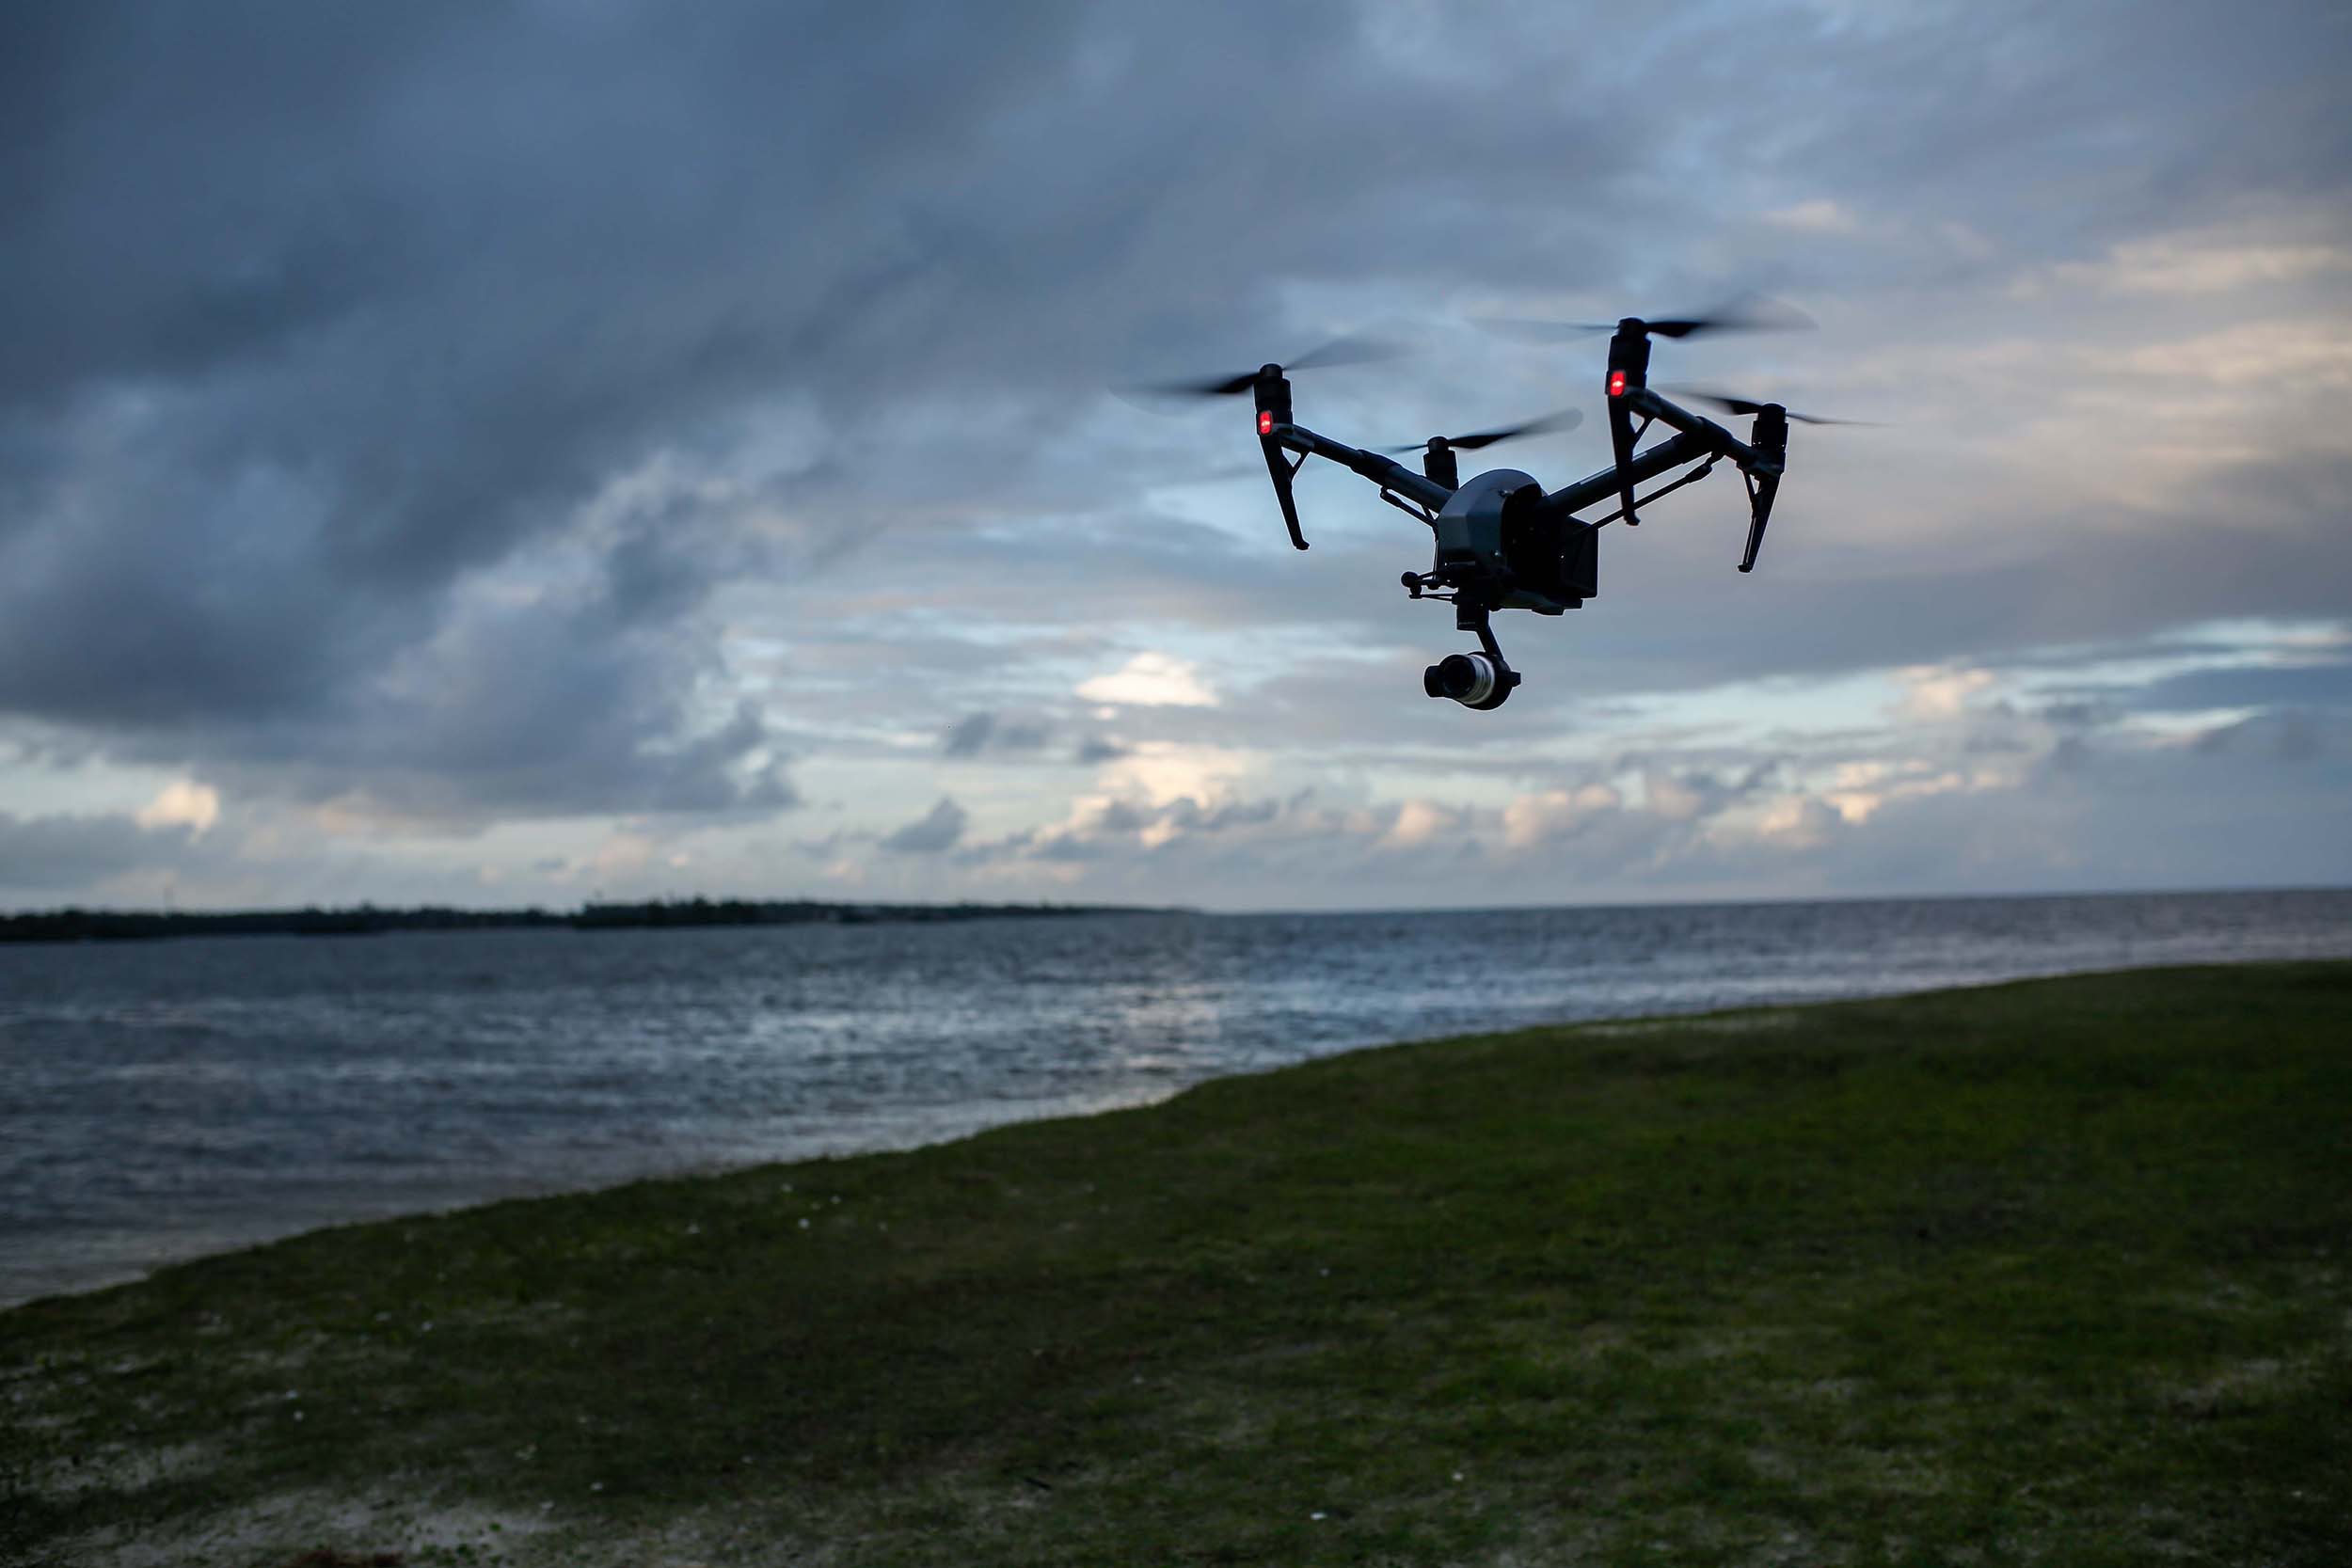 Drone in Action